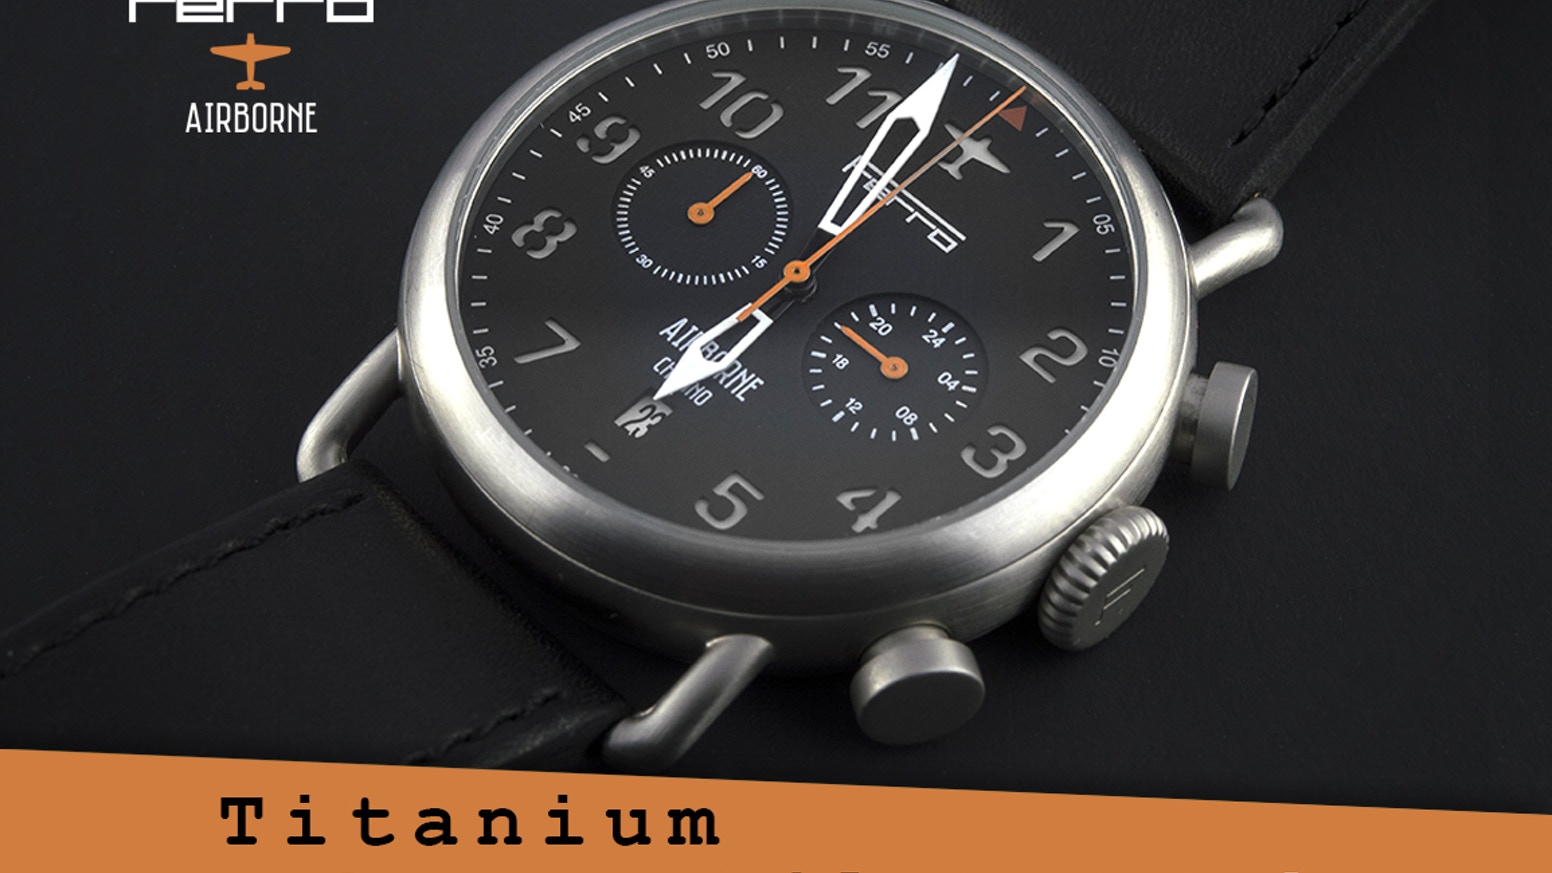 Titanium or Copper Pilot watches inspired by Vintage Aviation. Automatic or Hybrid movements with Sapphire Crystal. A watch for all.